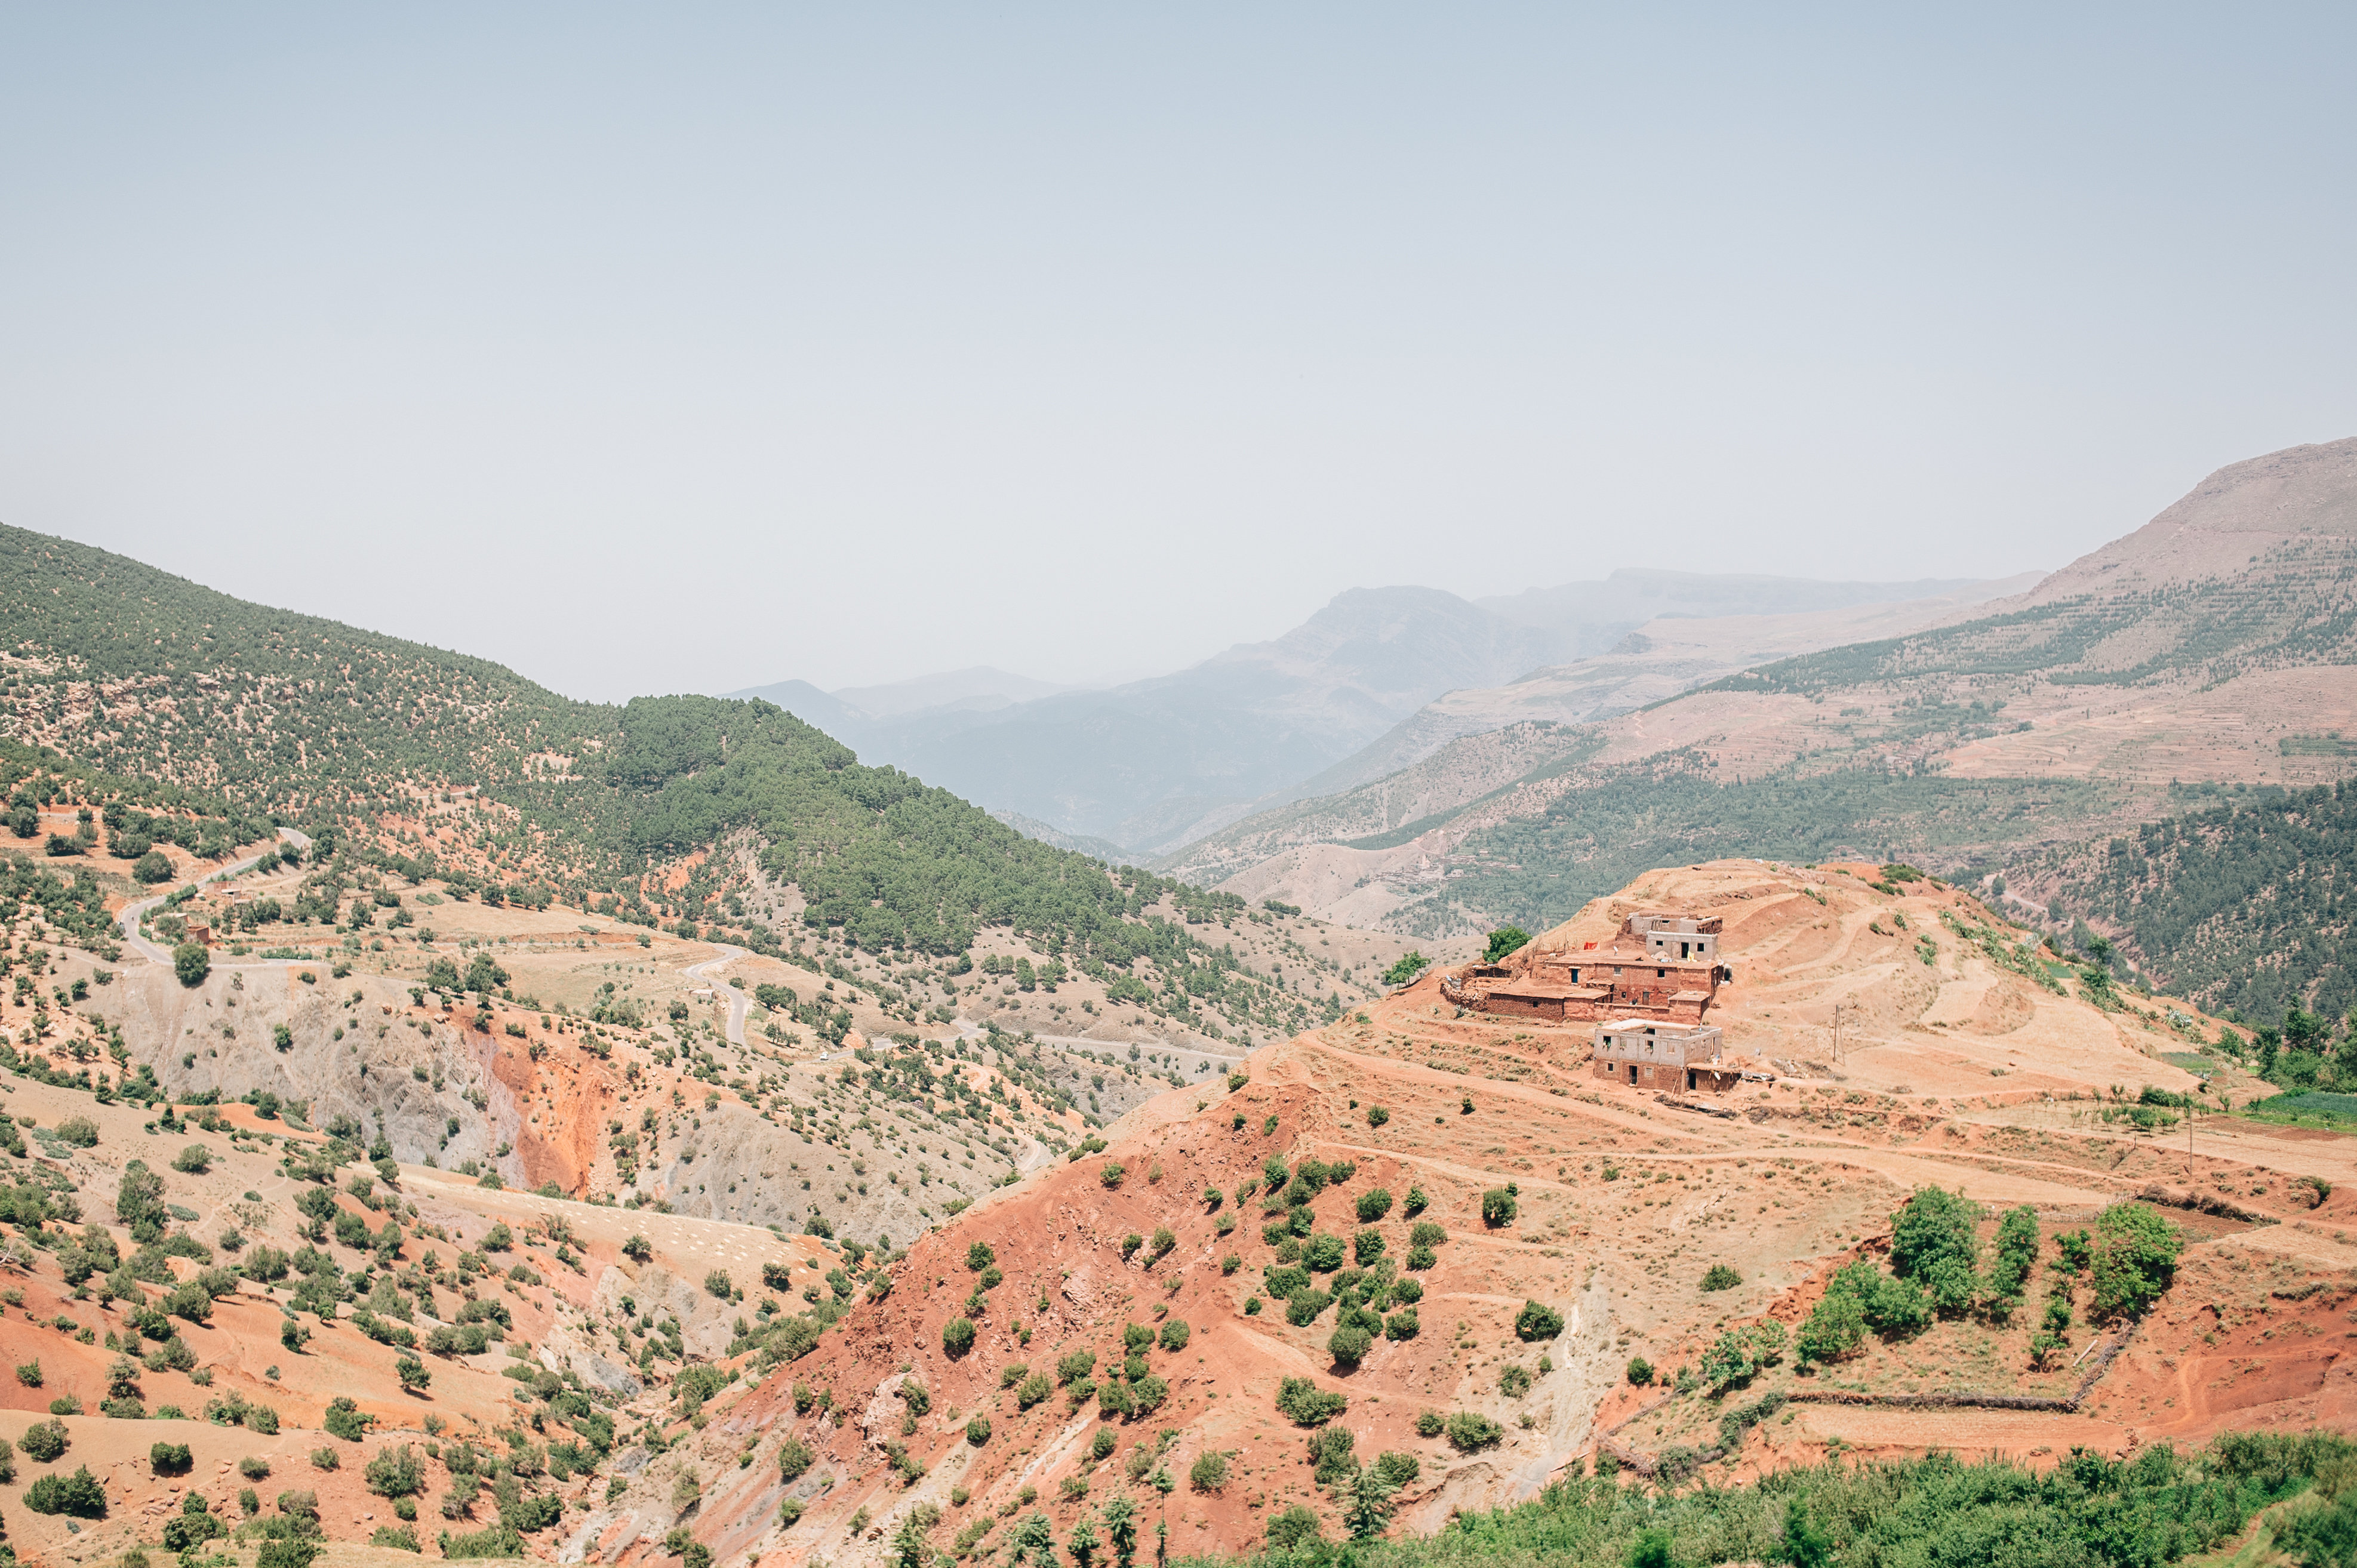 Oukaimeden Valley in the Atlas Mountains, Morocco, June 2015